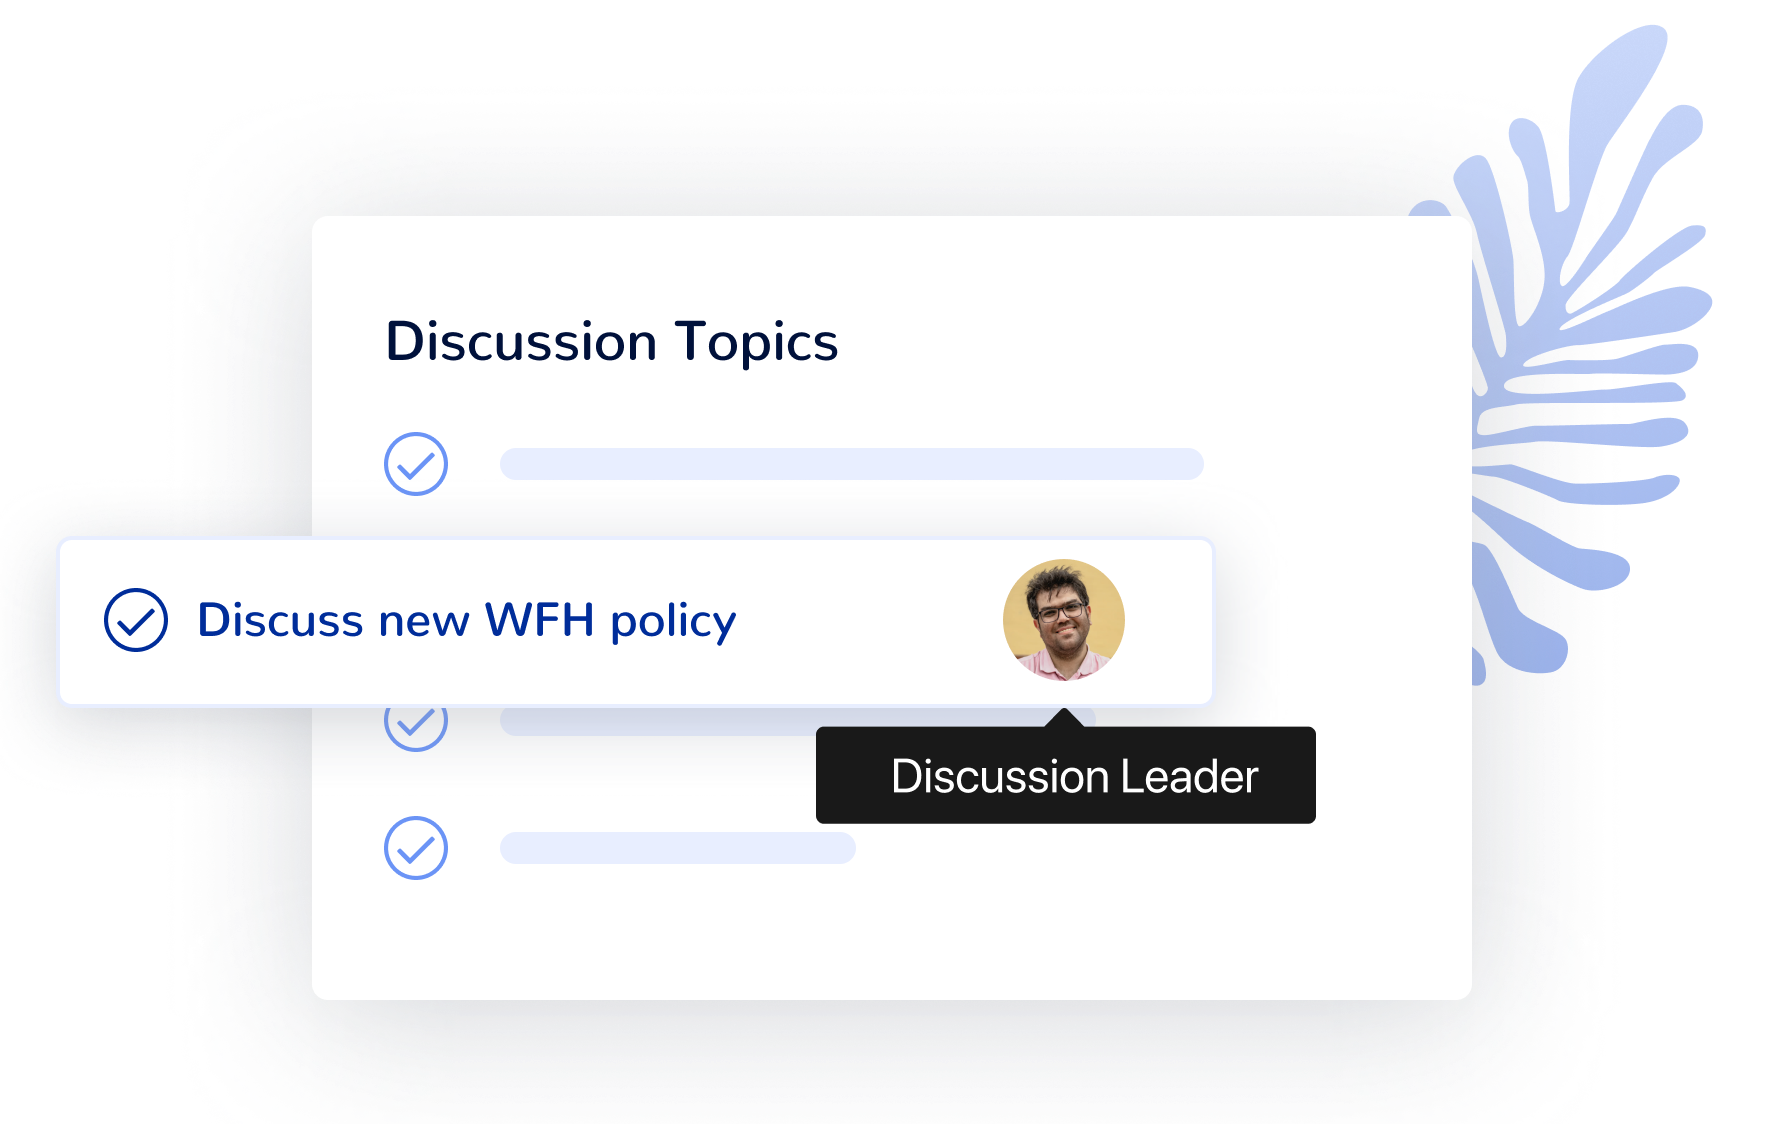 Create discussion topics for collaborative asynchronous team